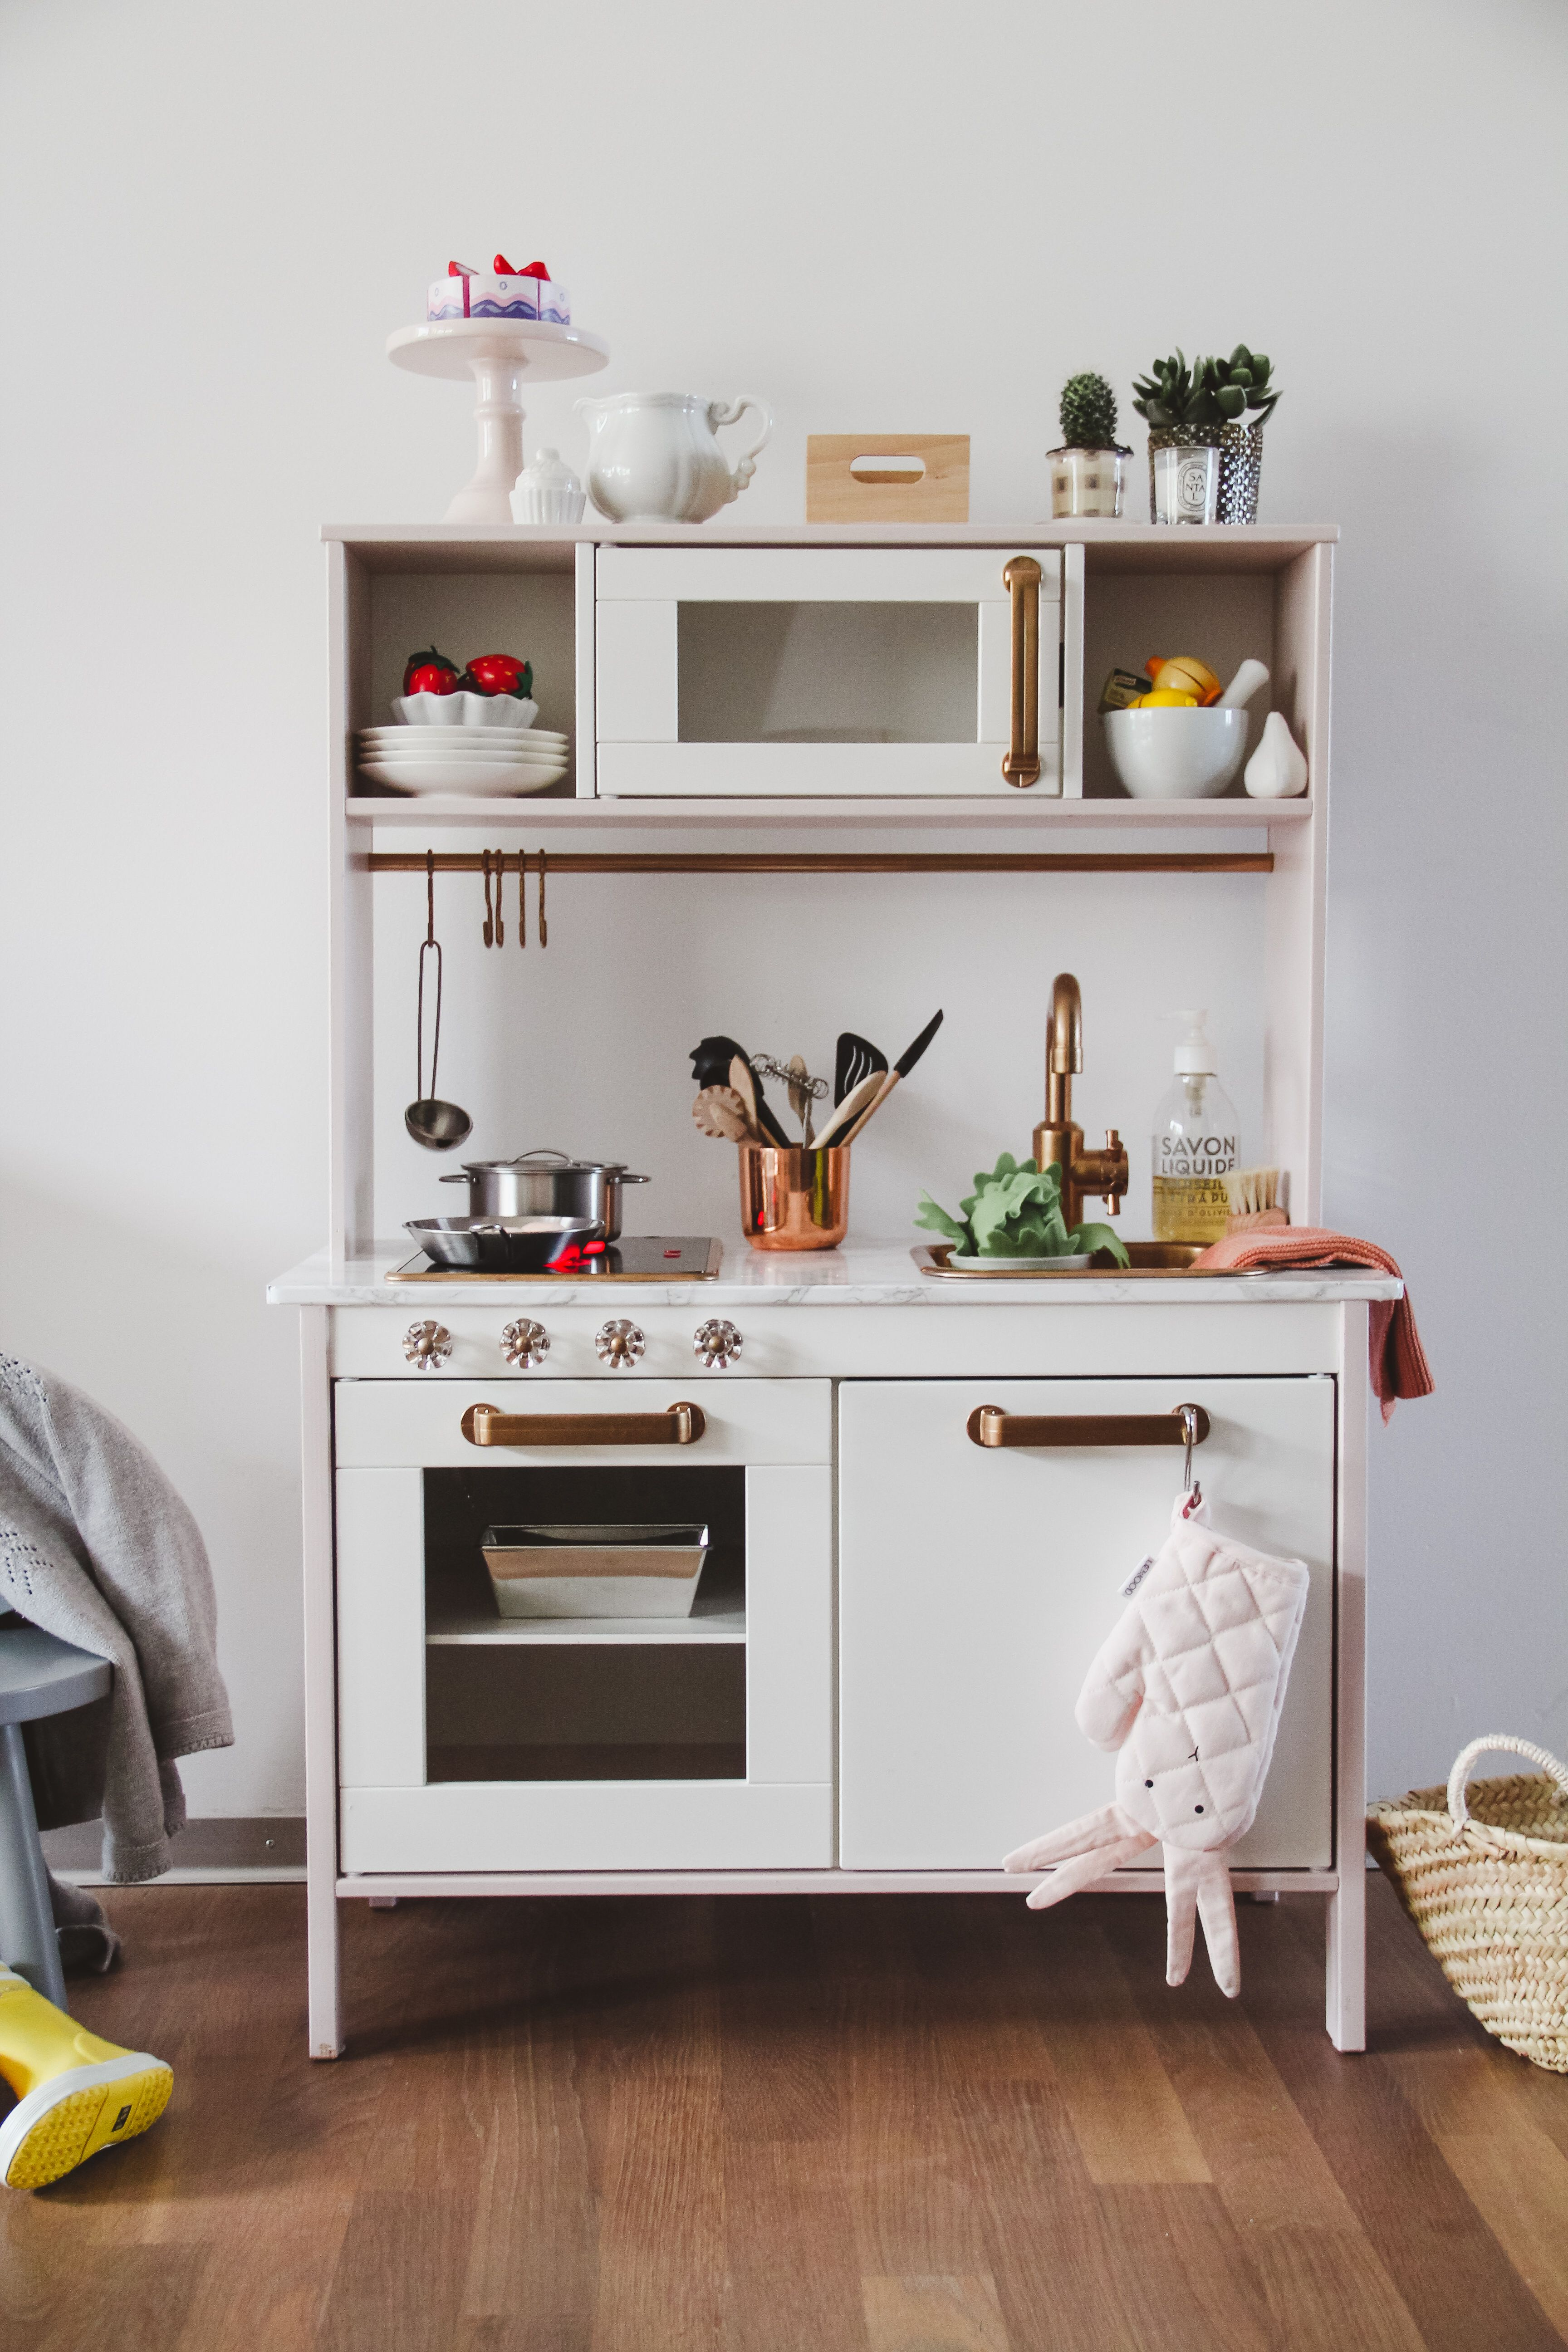 Duktig Küche Ikea Family Ikea Play Kitchen Hack E S Gold And White Duktig Play Kitchen